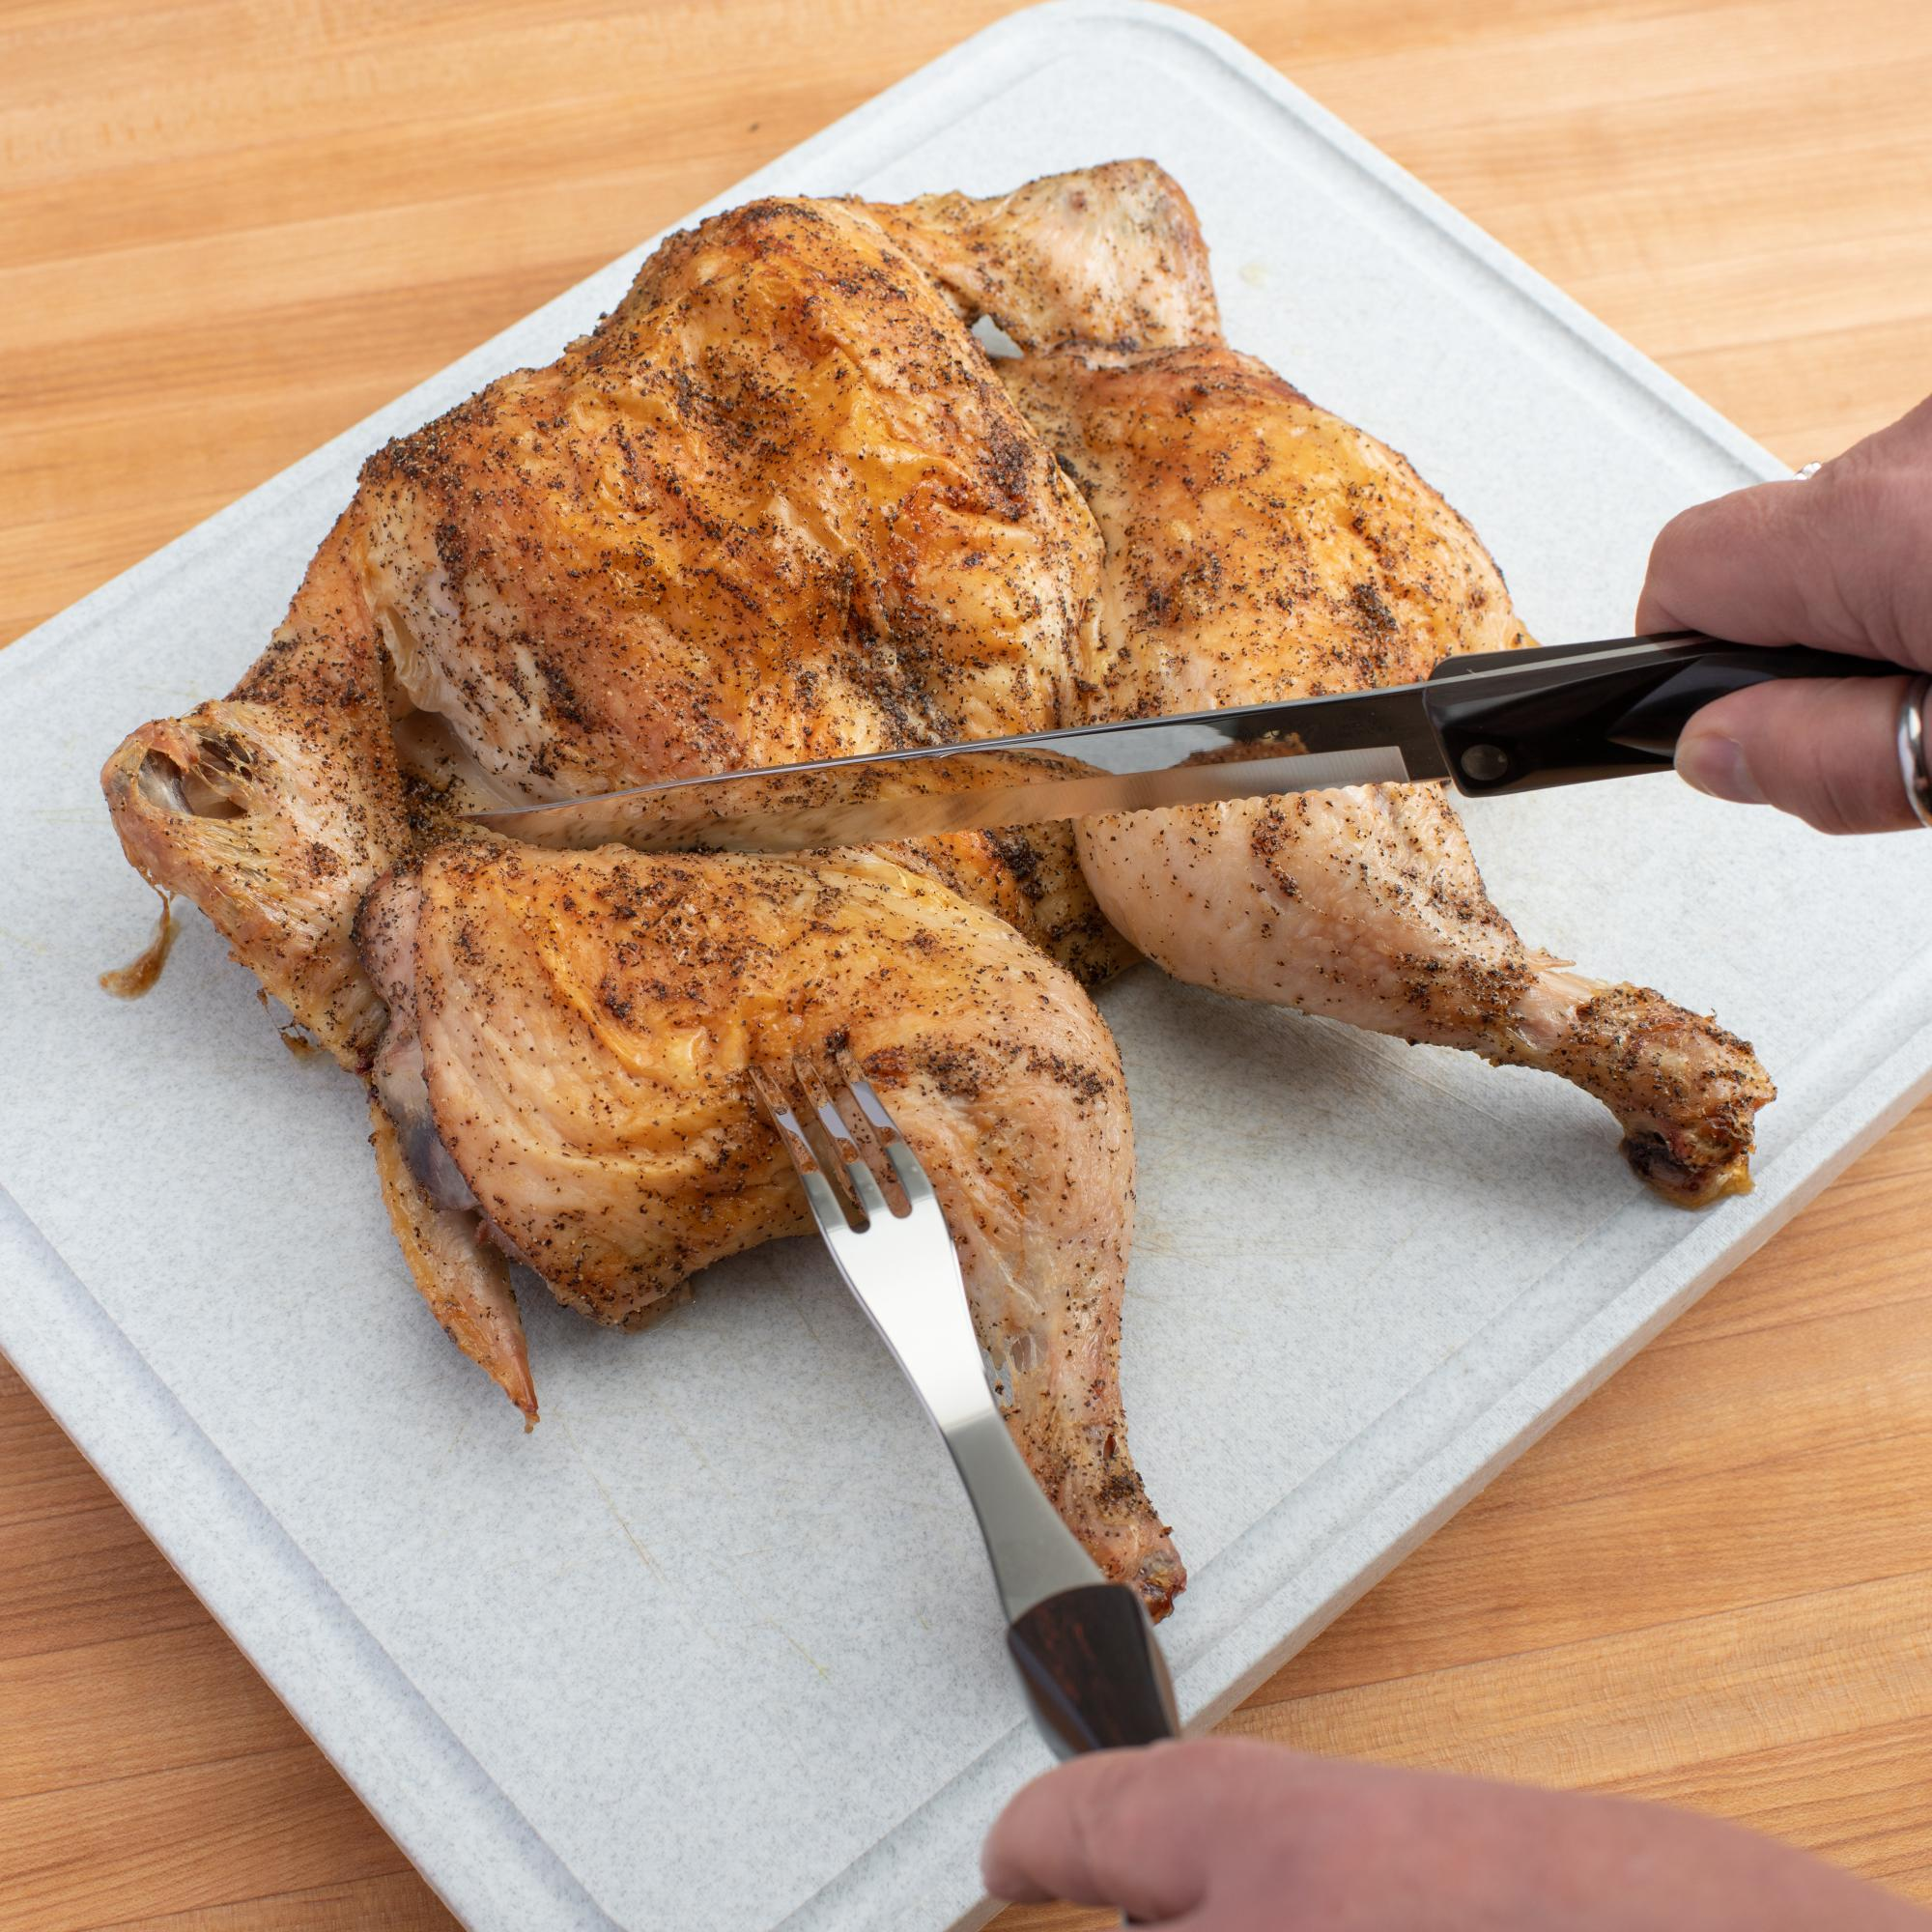 Carving the chicken with the Petite Carver.